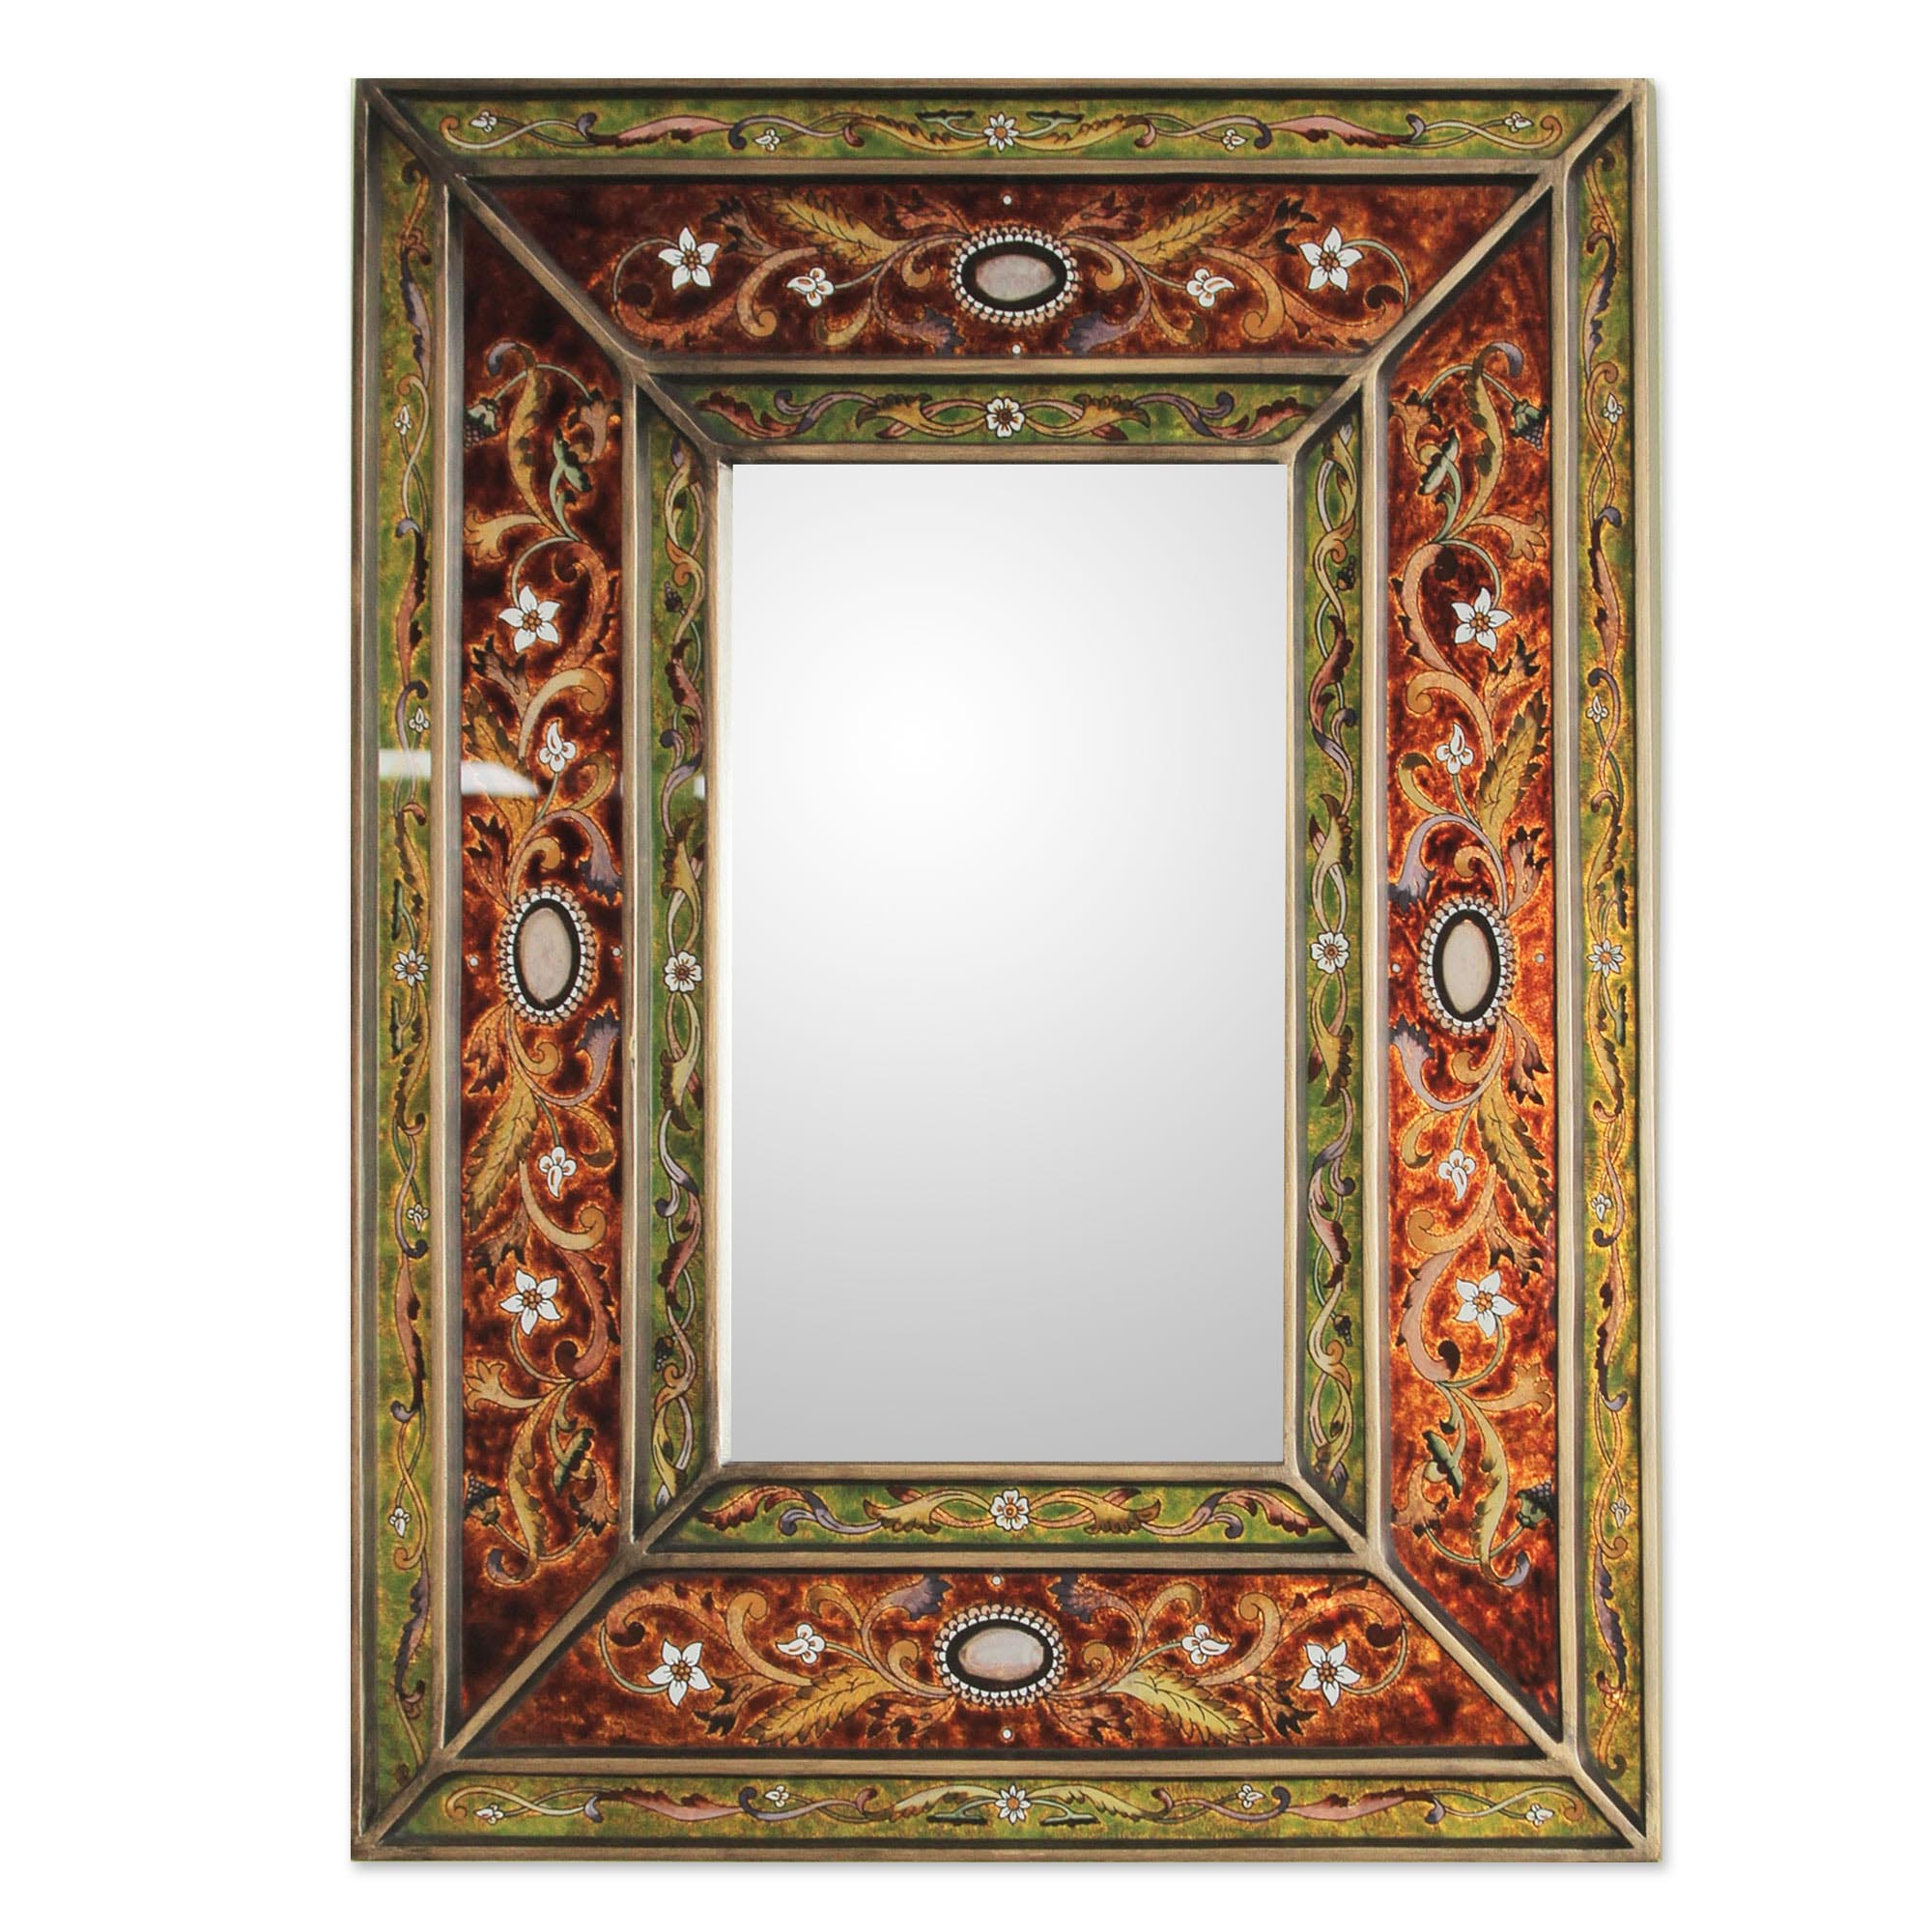 Antique wall mirrors decorative best decor things for Mirror decor